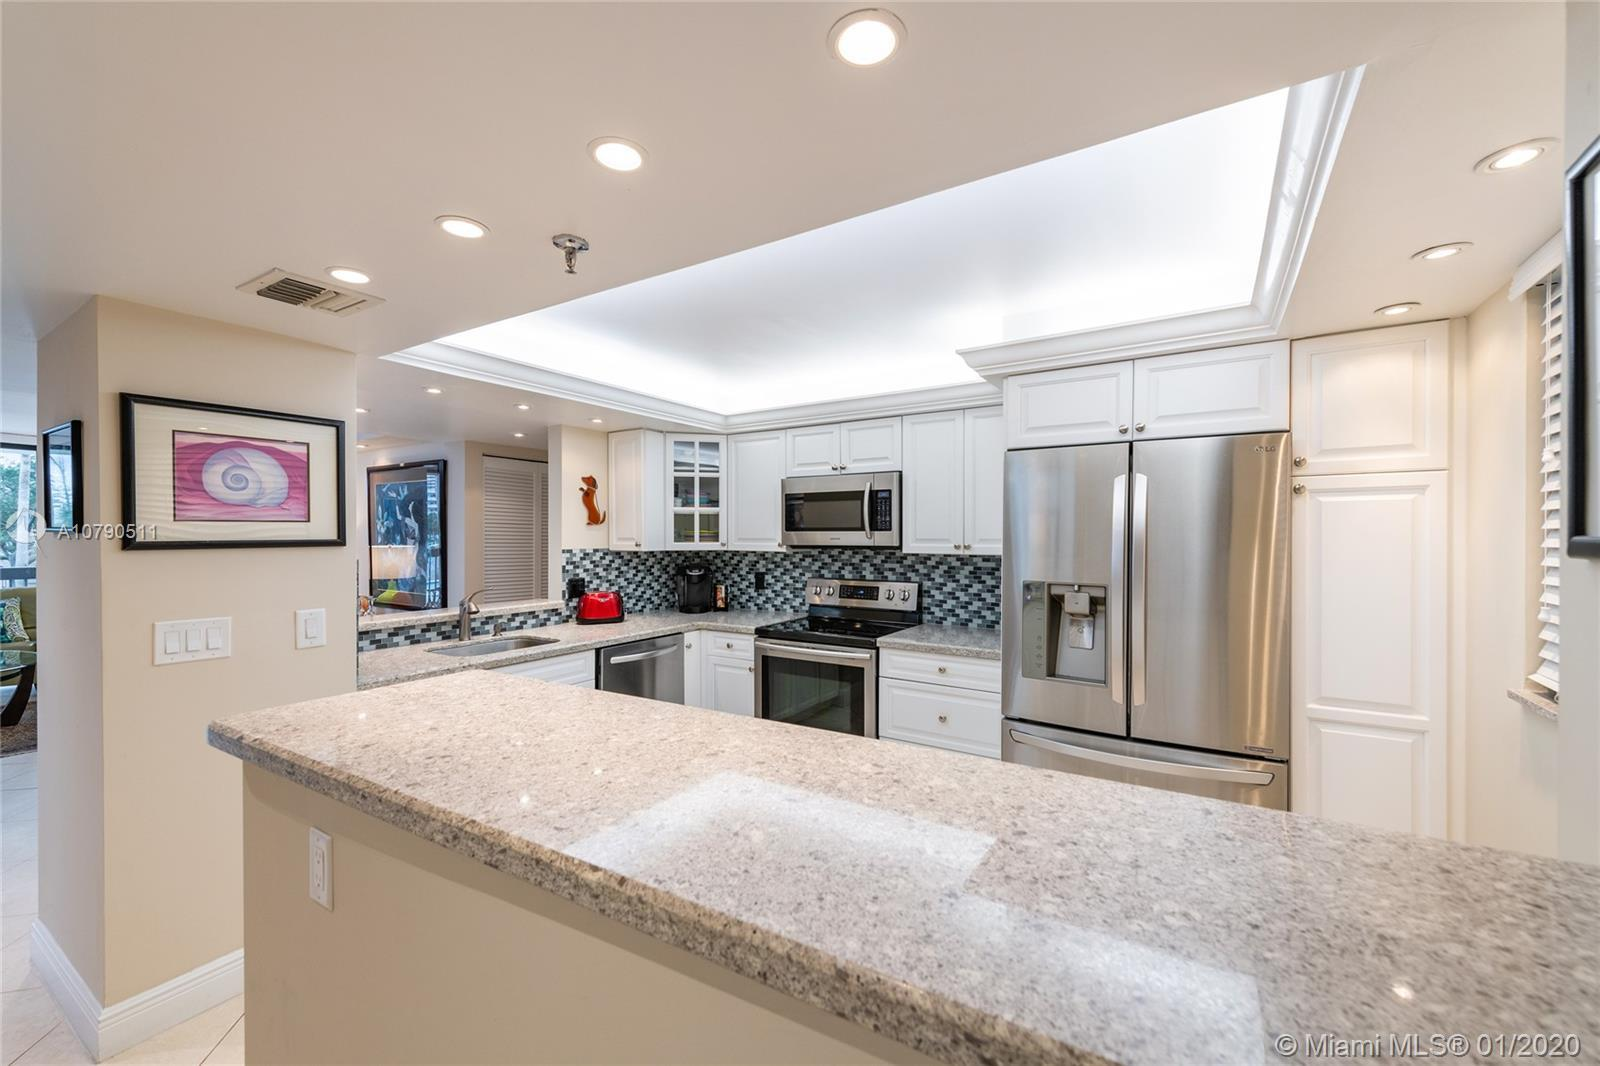 SOUTH FACING LARGE AND COMPLETELY REMODELED UNIT WITH SPLIT FLOOR PLAN AND INTRACOASTAL AND POOL VI